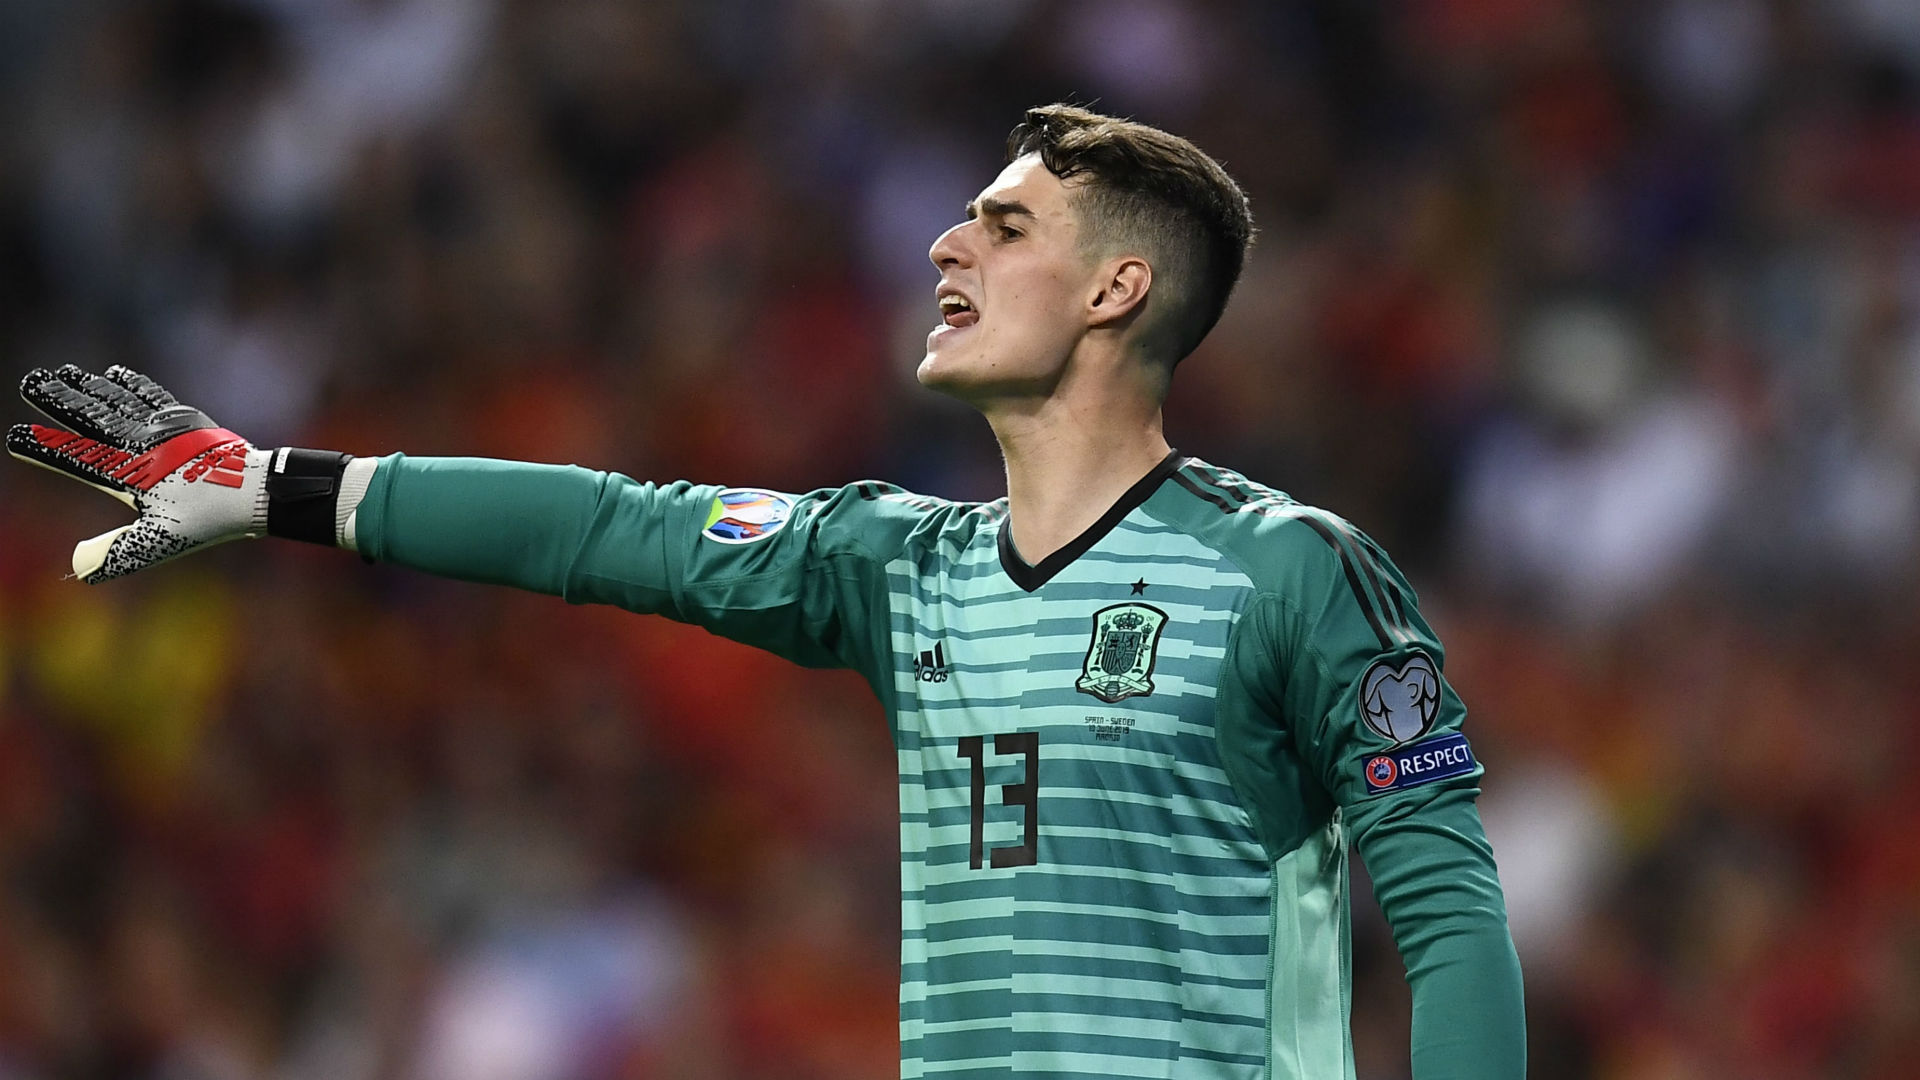 Kepa is not Spain's first-choice goalkeeper, says Moreno